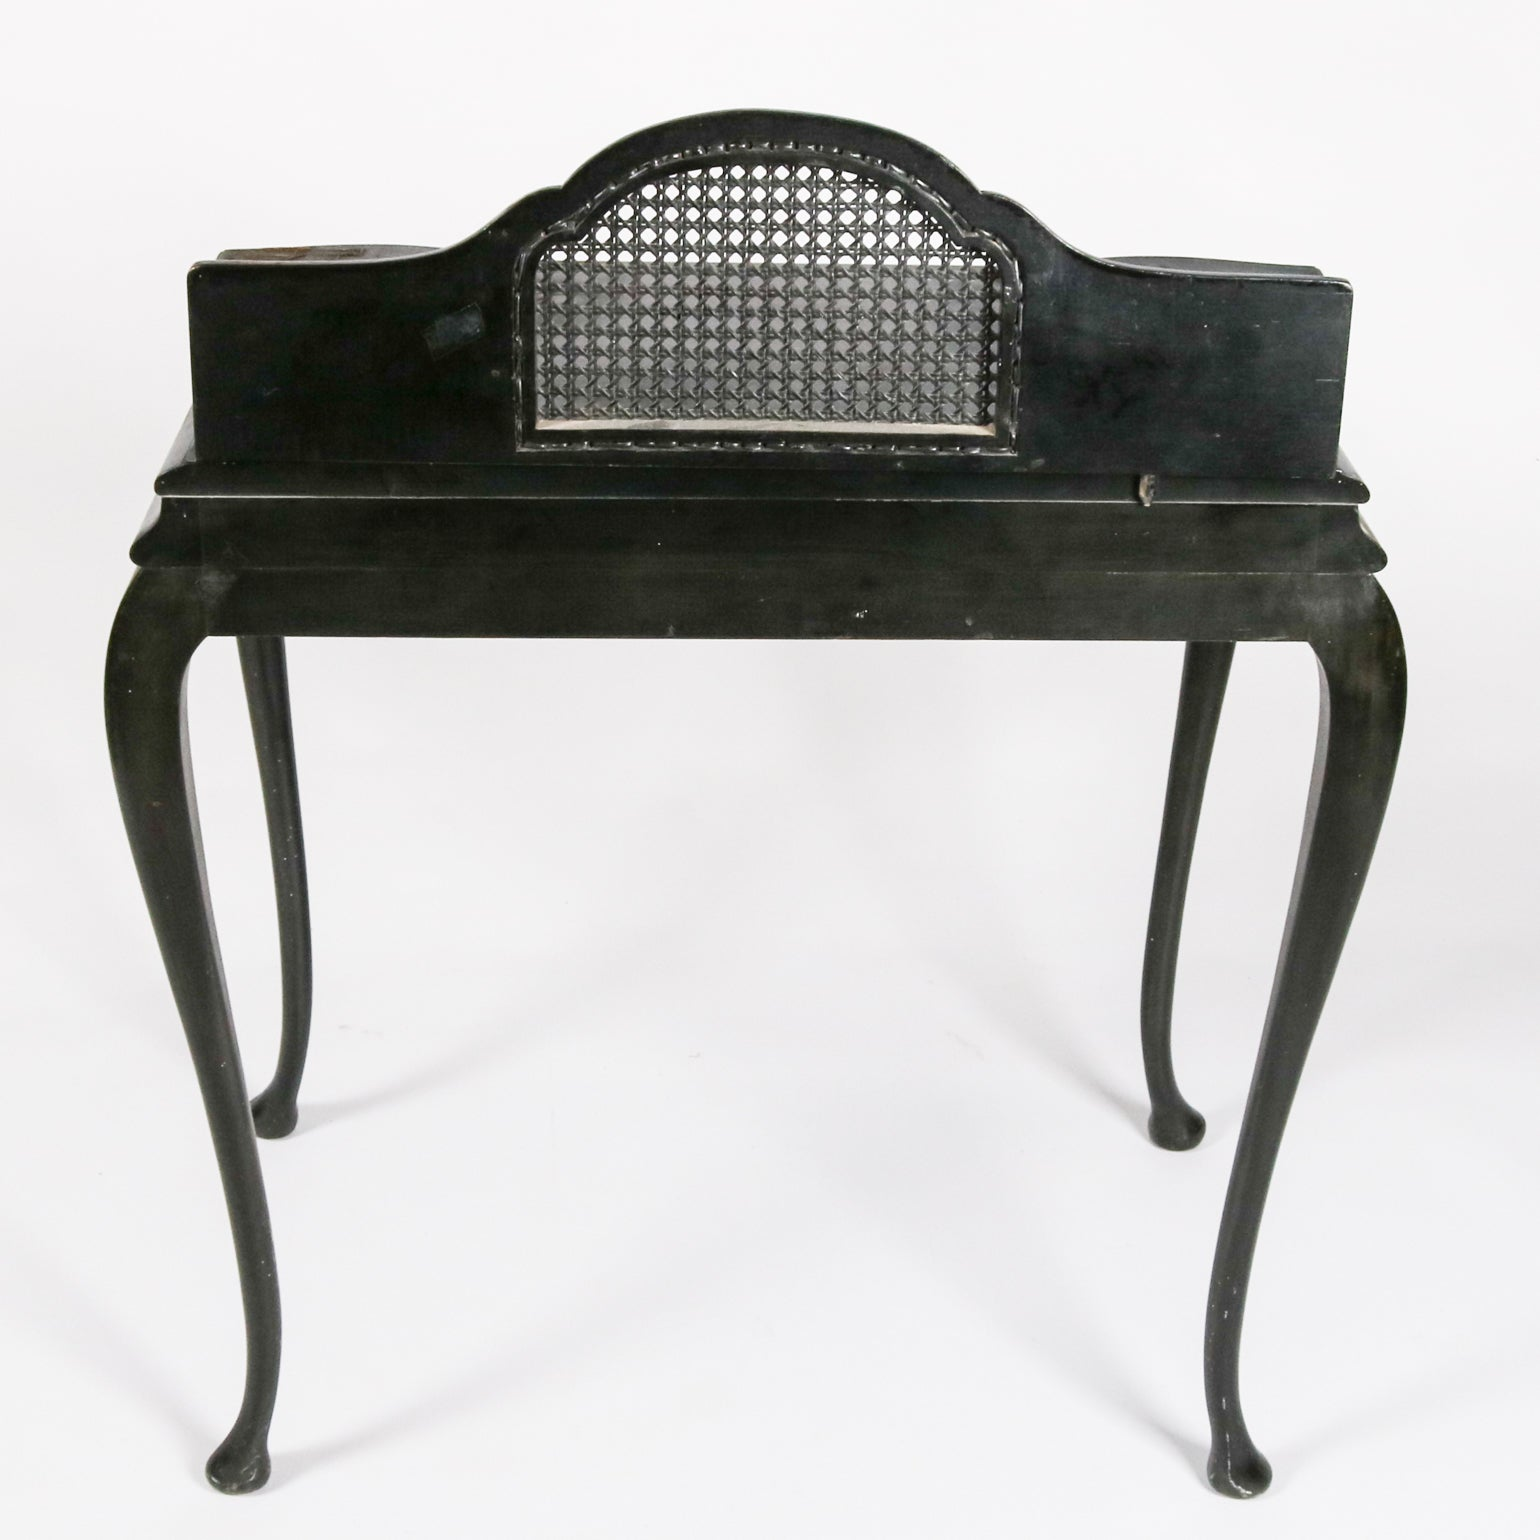 Antique Japanned Caned Black Lacquer Paint Decorated Desk And Stool,